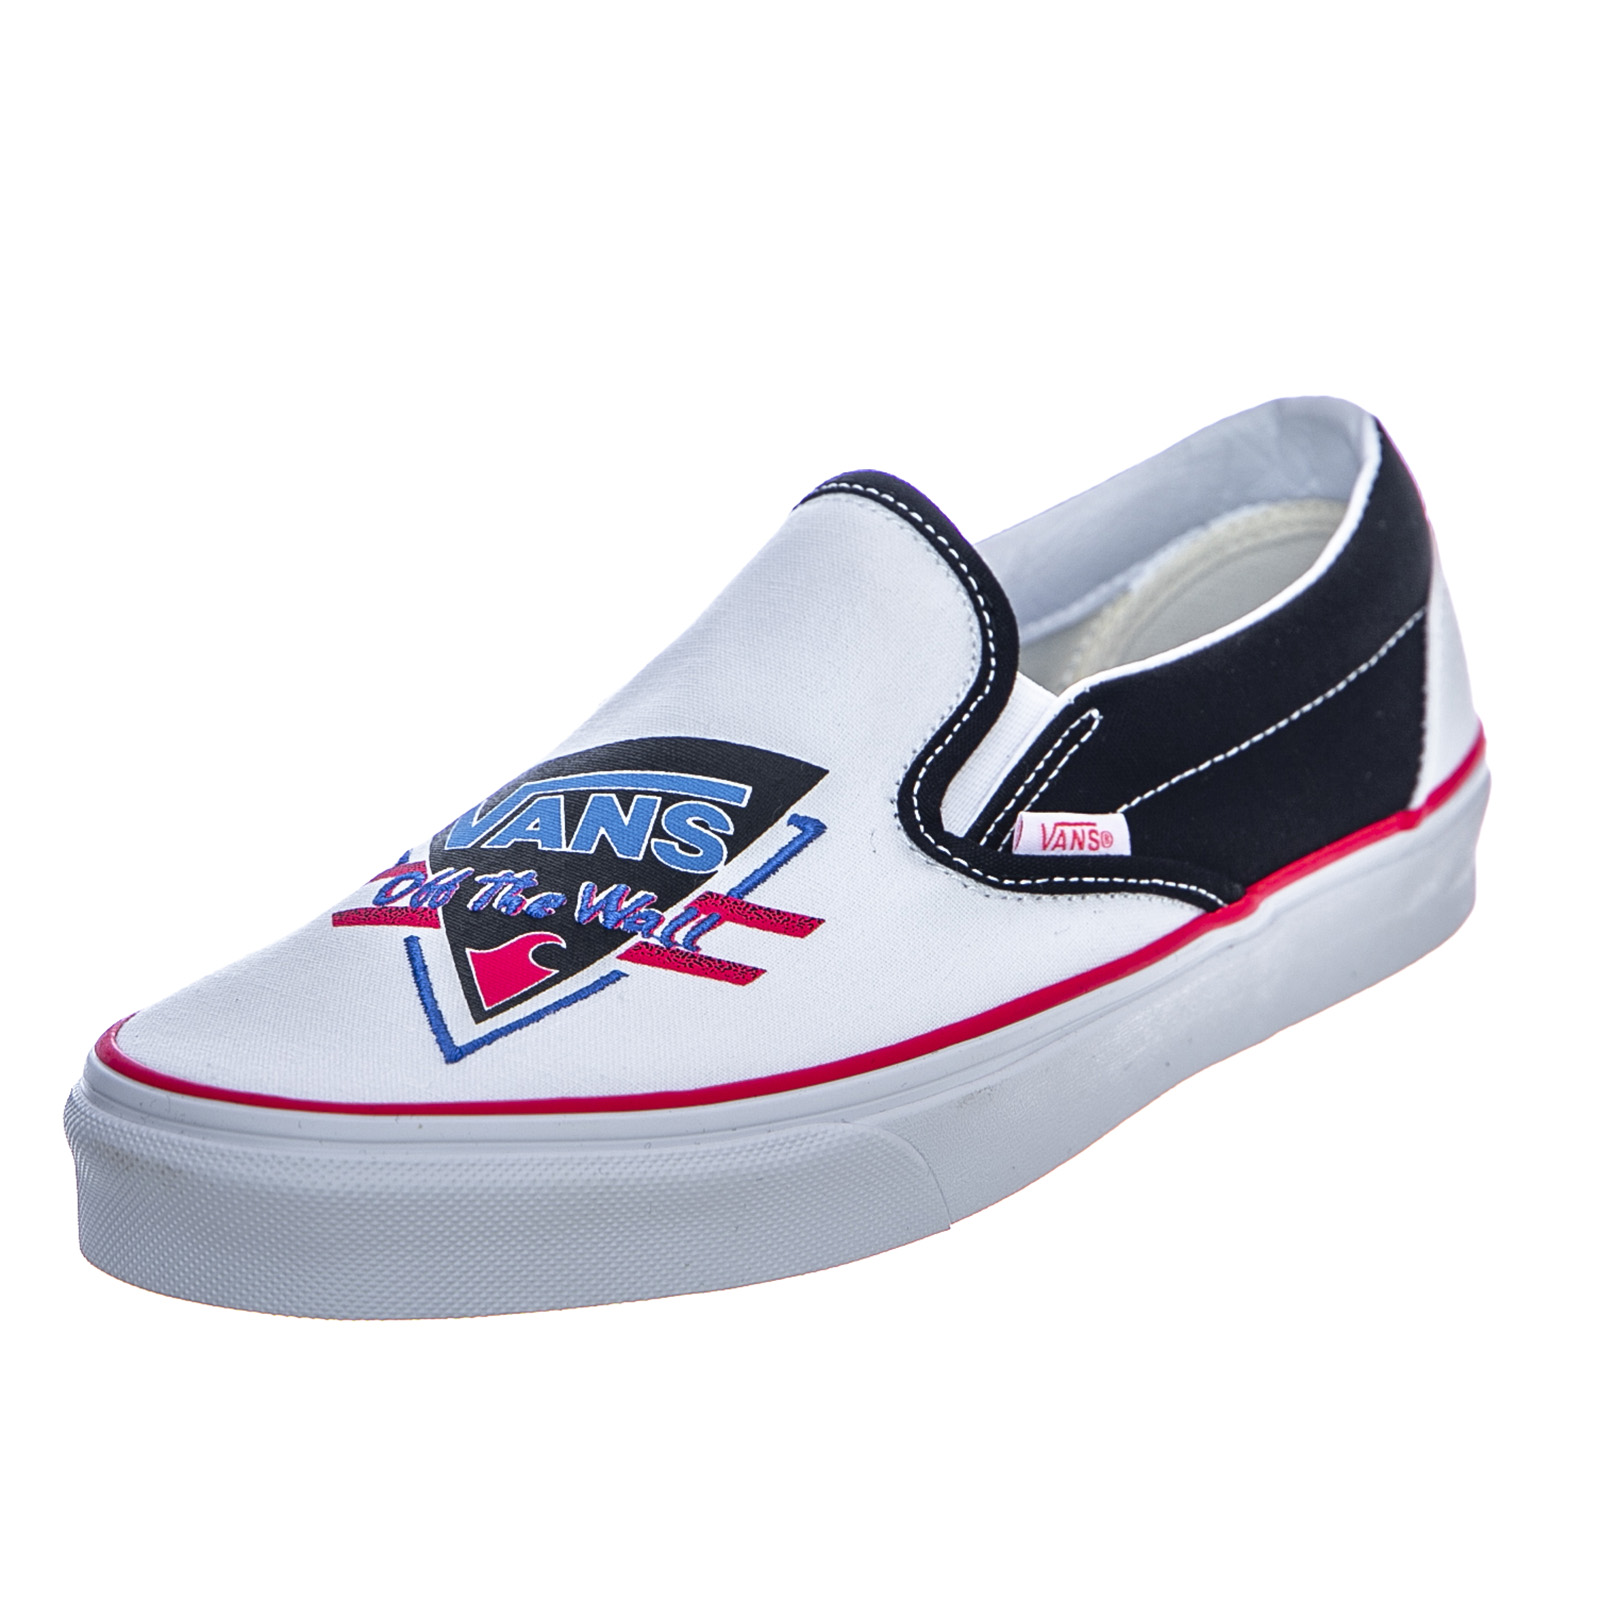 wholesale dealer e6c96 bfcb2 Details about Vans Ua California Native Classic - True White / Tea Berry -  Shoes Slip-On